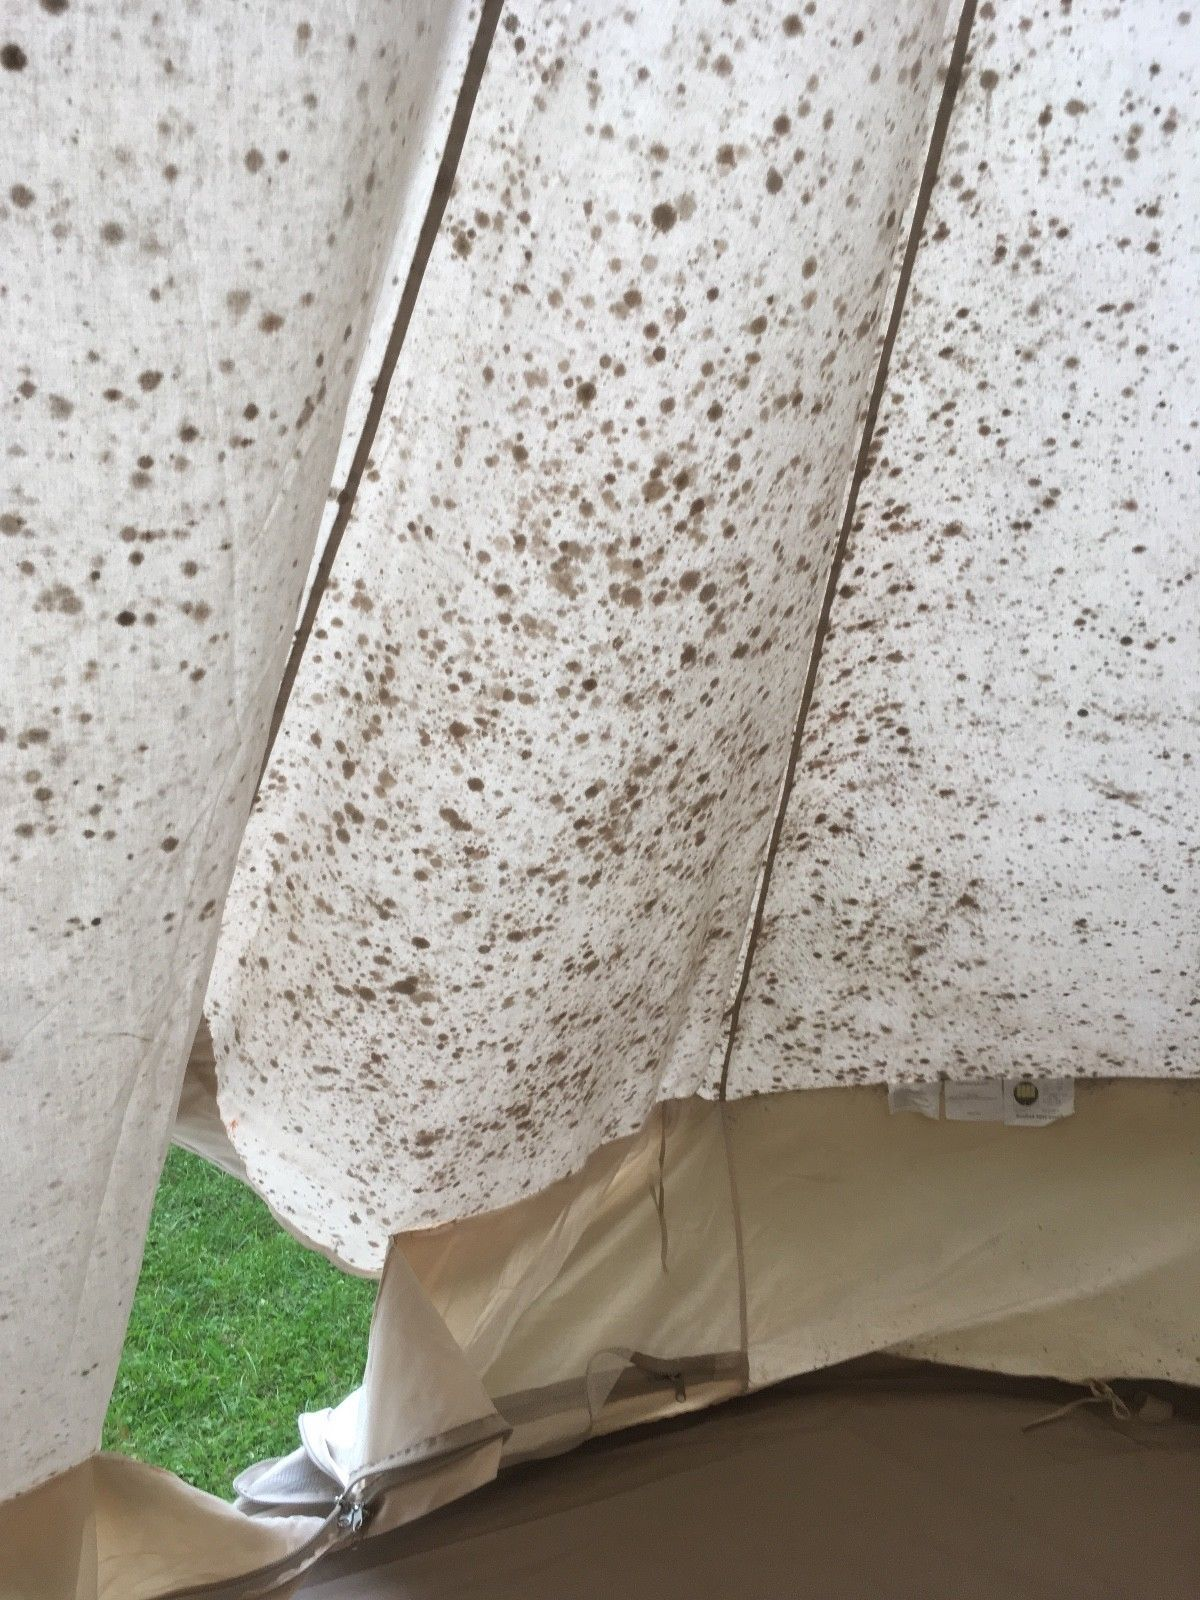 Saved By The Bell Tent Removing Mildew From A Cotton Tent Remove Mould From Fabric Tent Mold Smell